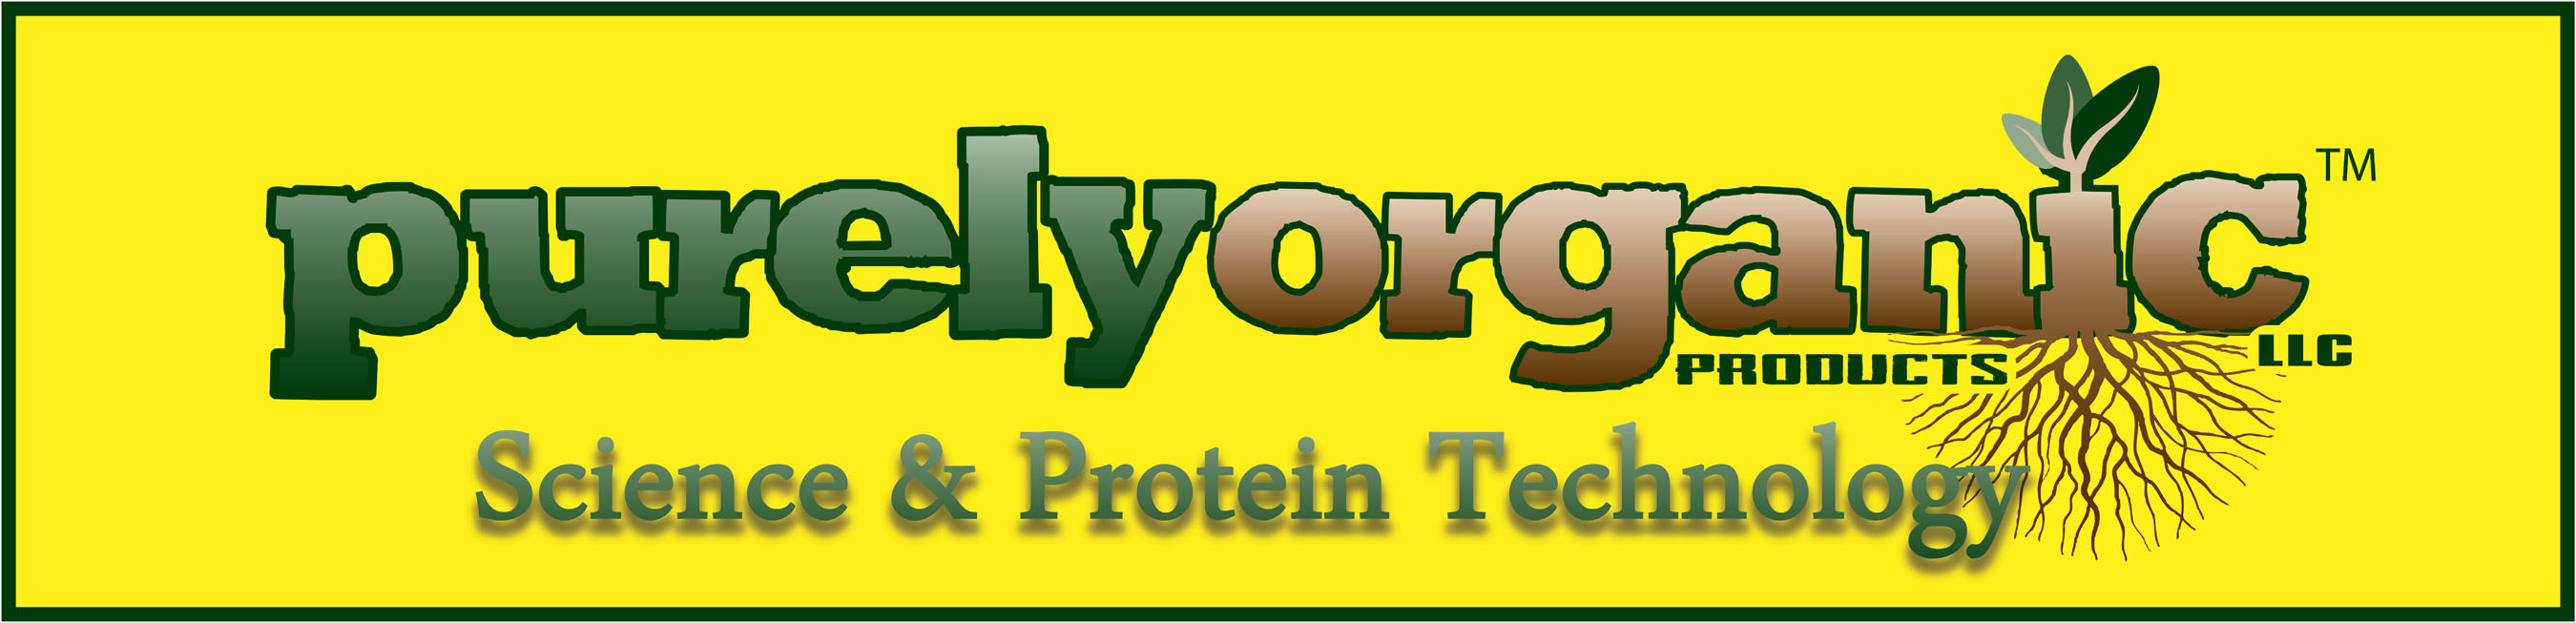 Purely Organic Products is a leading manufacturer and supplier of professional organic fertilizers, soil ...